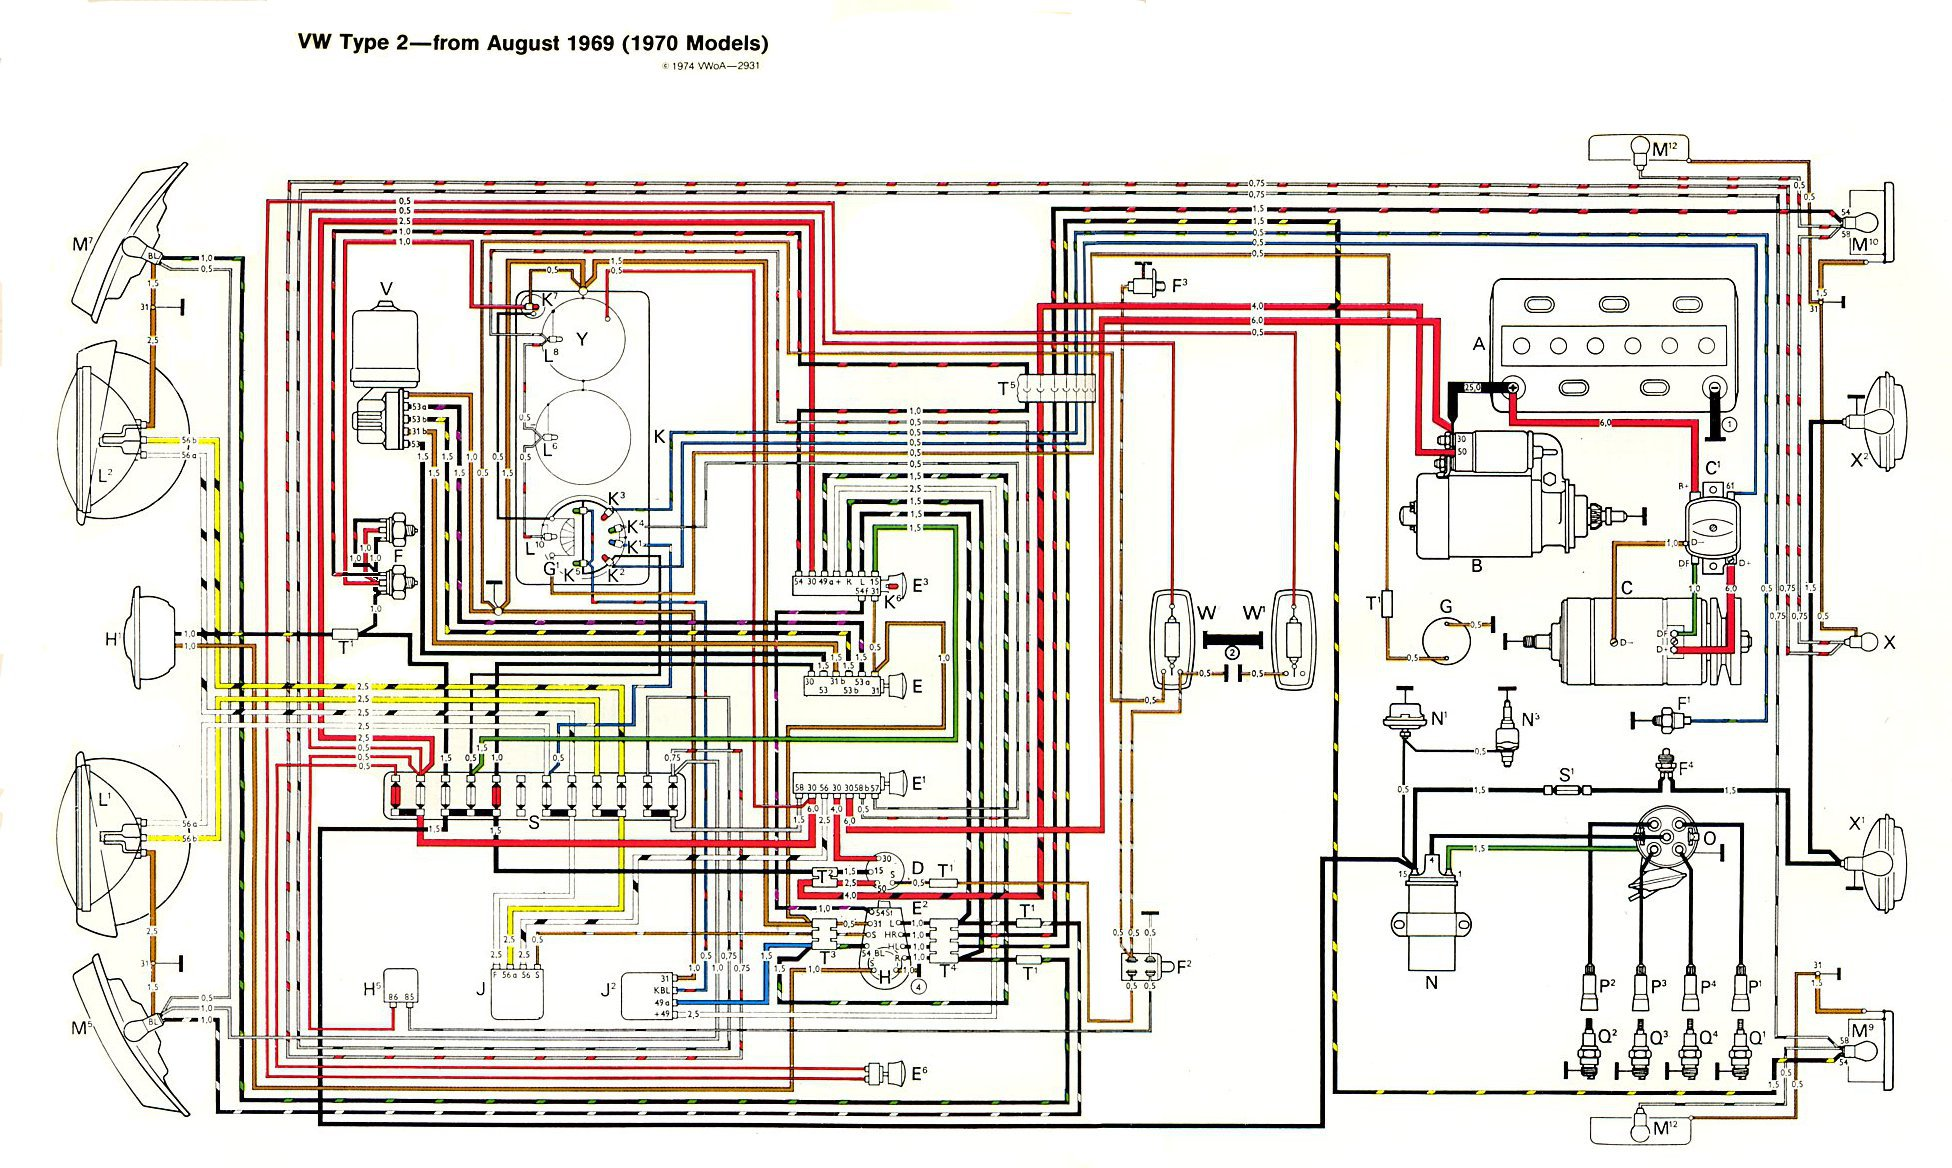 baybus_70 thesamba com type 2 wiring diagrams 1970 vw bug wiring diagram at fashall.co